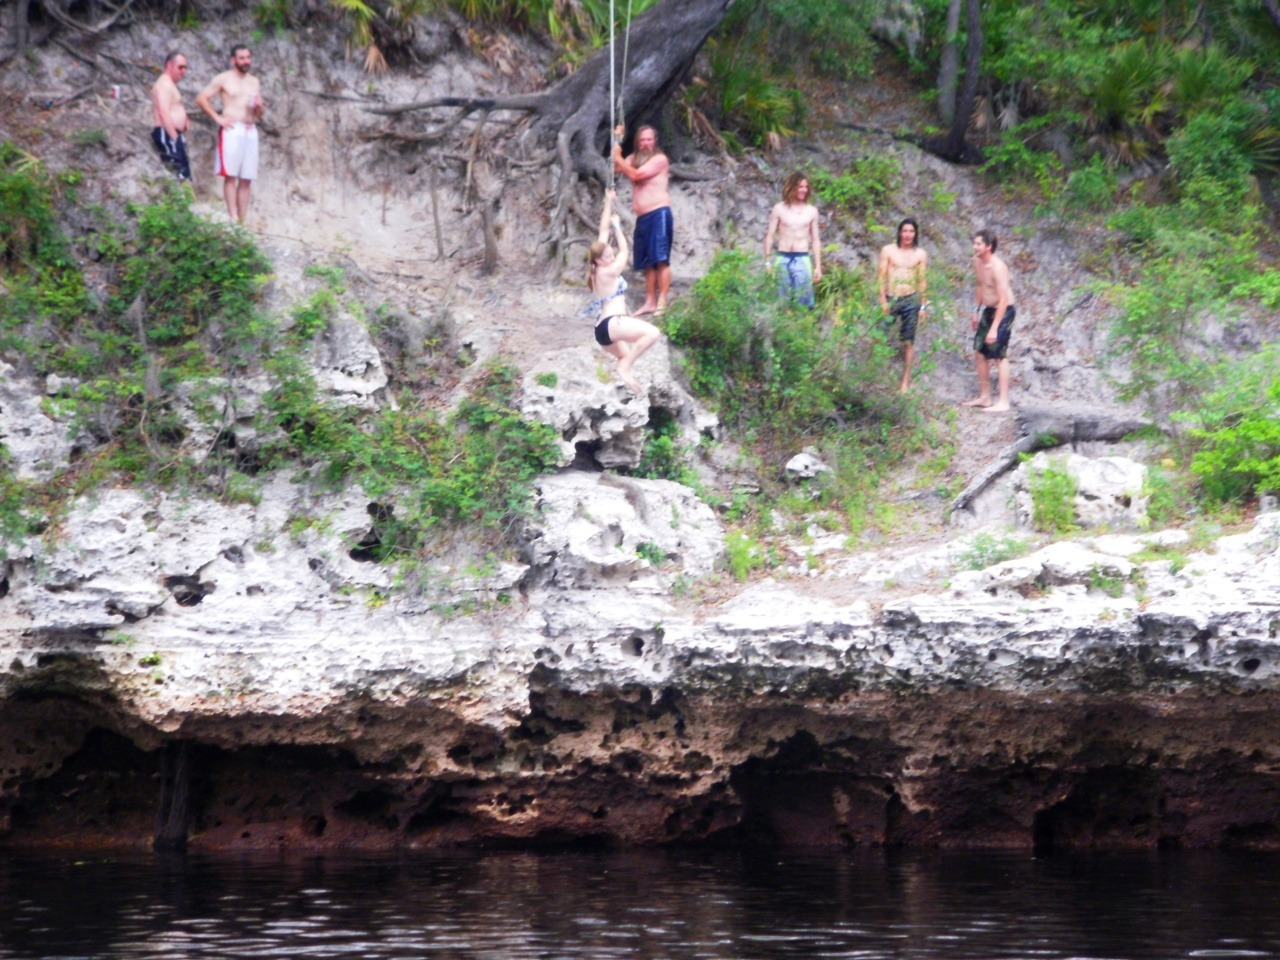 Swinging off a cliff from a rope into the black river at Live Oak, FL